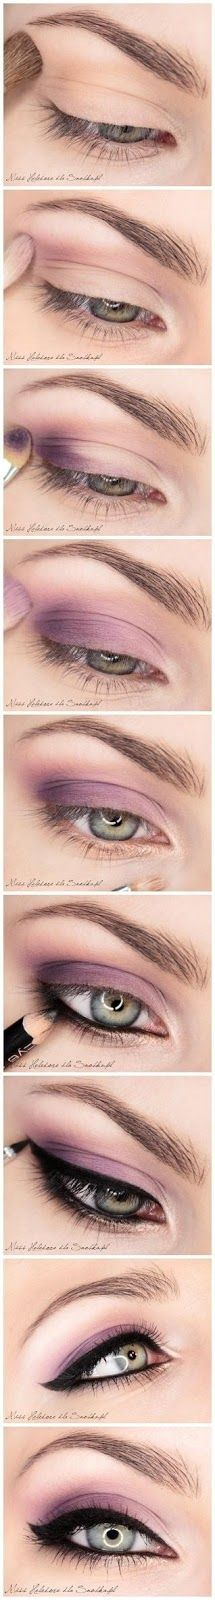 Purple eyeshadow black eyeliner makeup